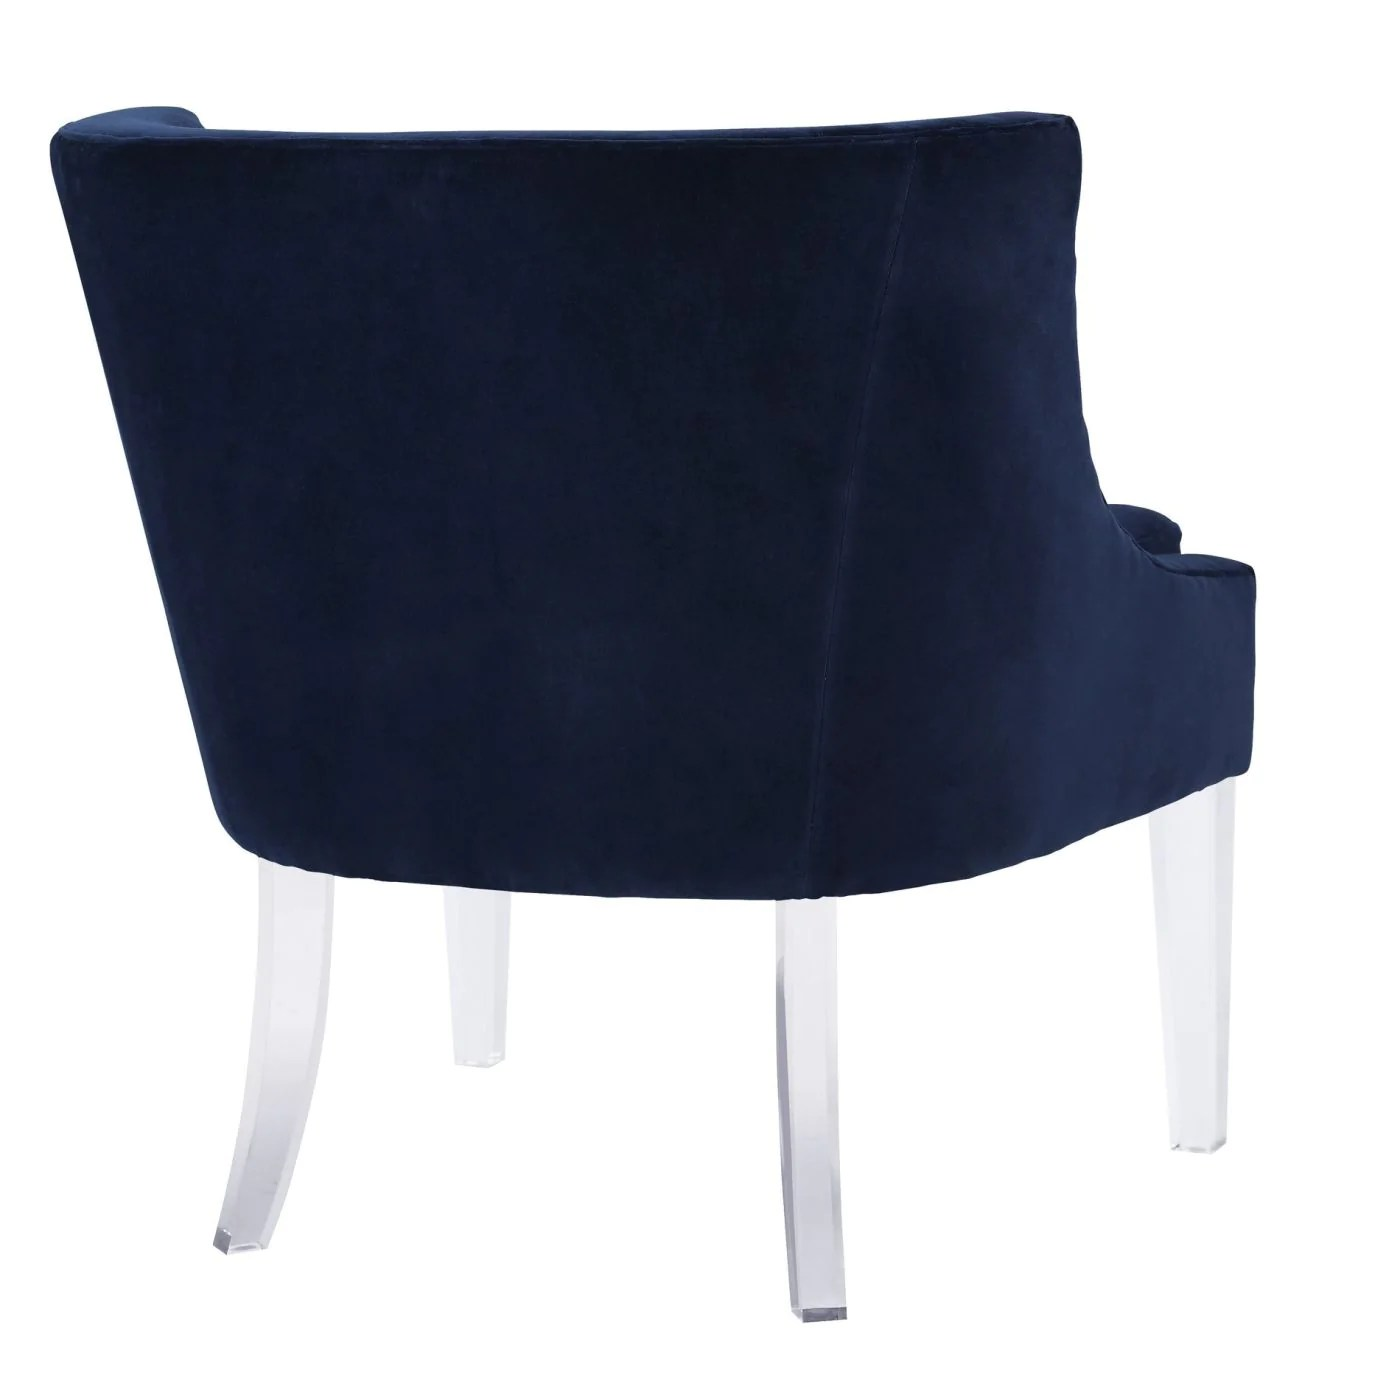 Lucite Chair Buy Tov Furniture Tov A105 Myra Blue Velvet Chair With Lucite Legs At Contemporary Furniture Warehouse